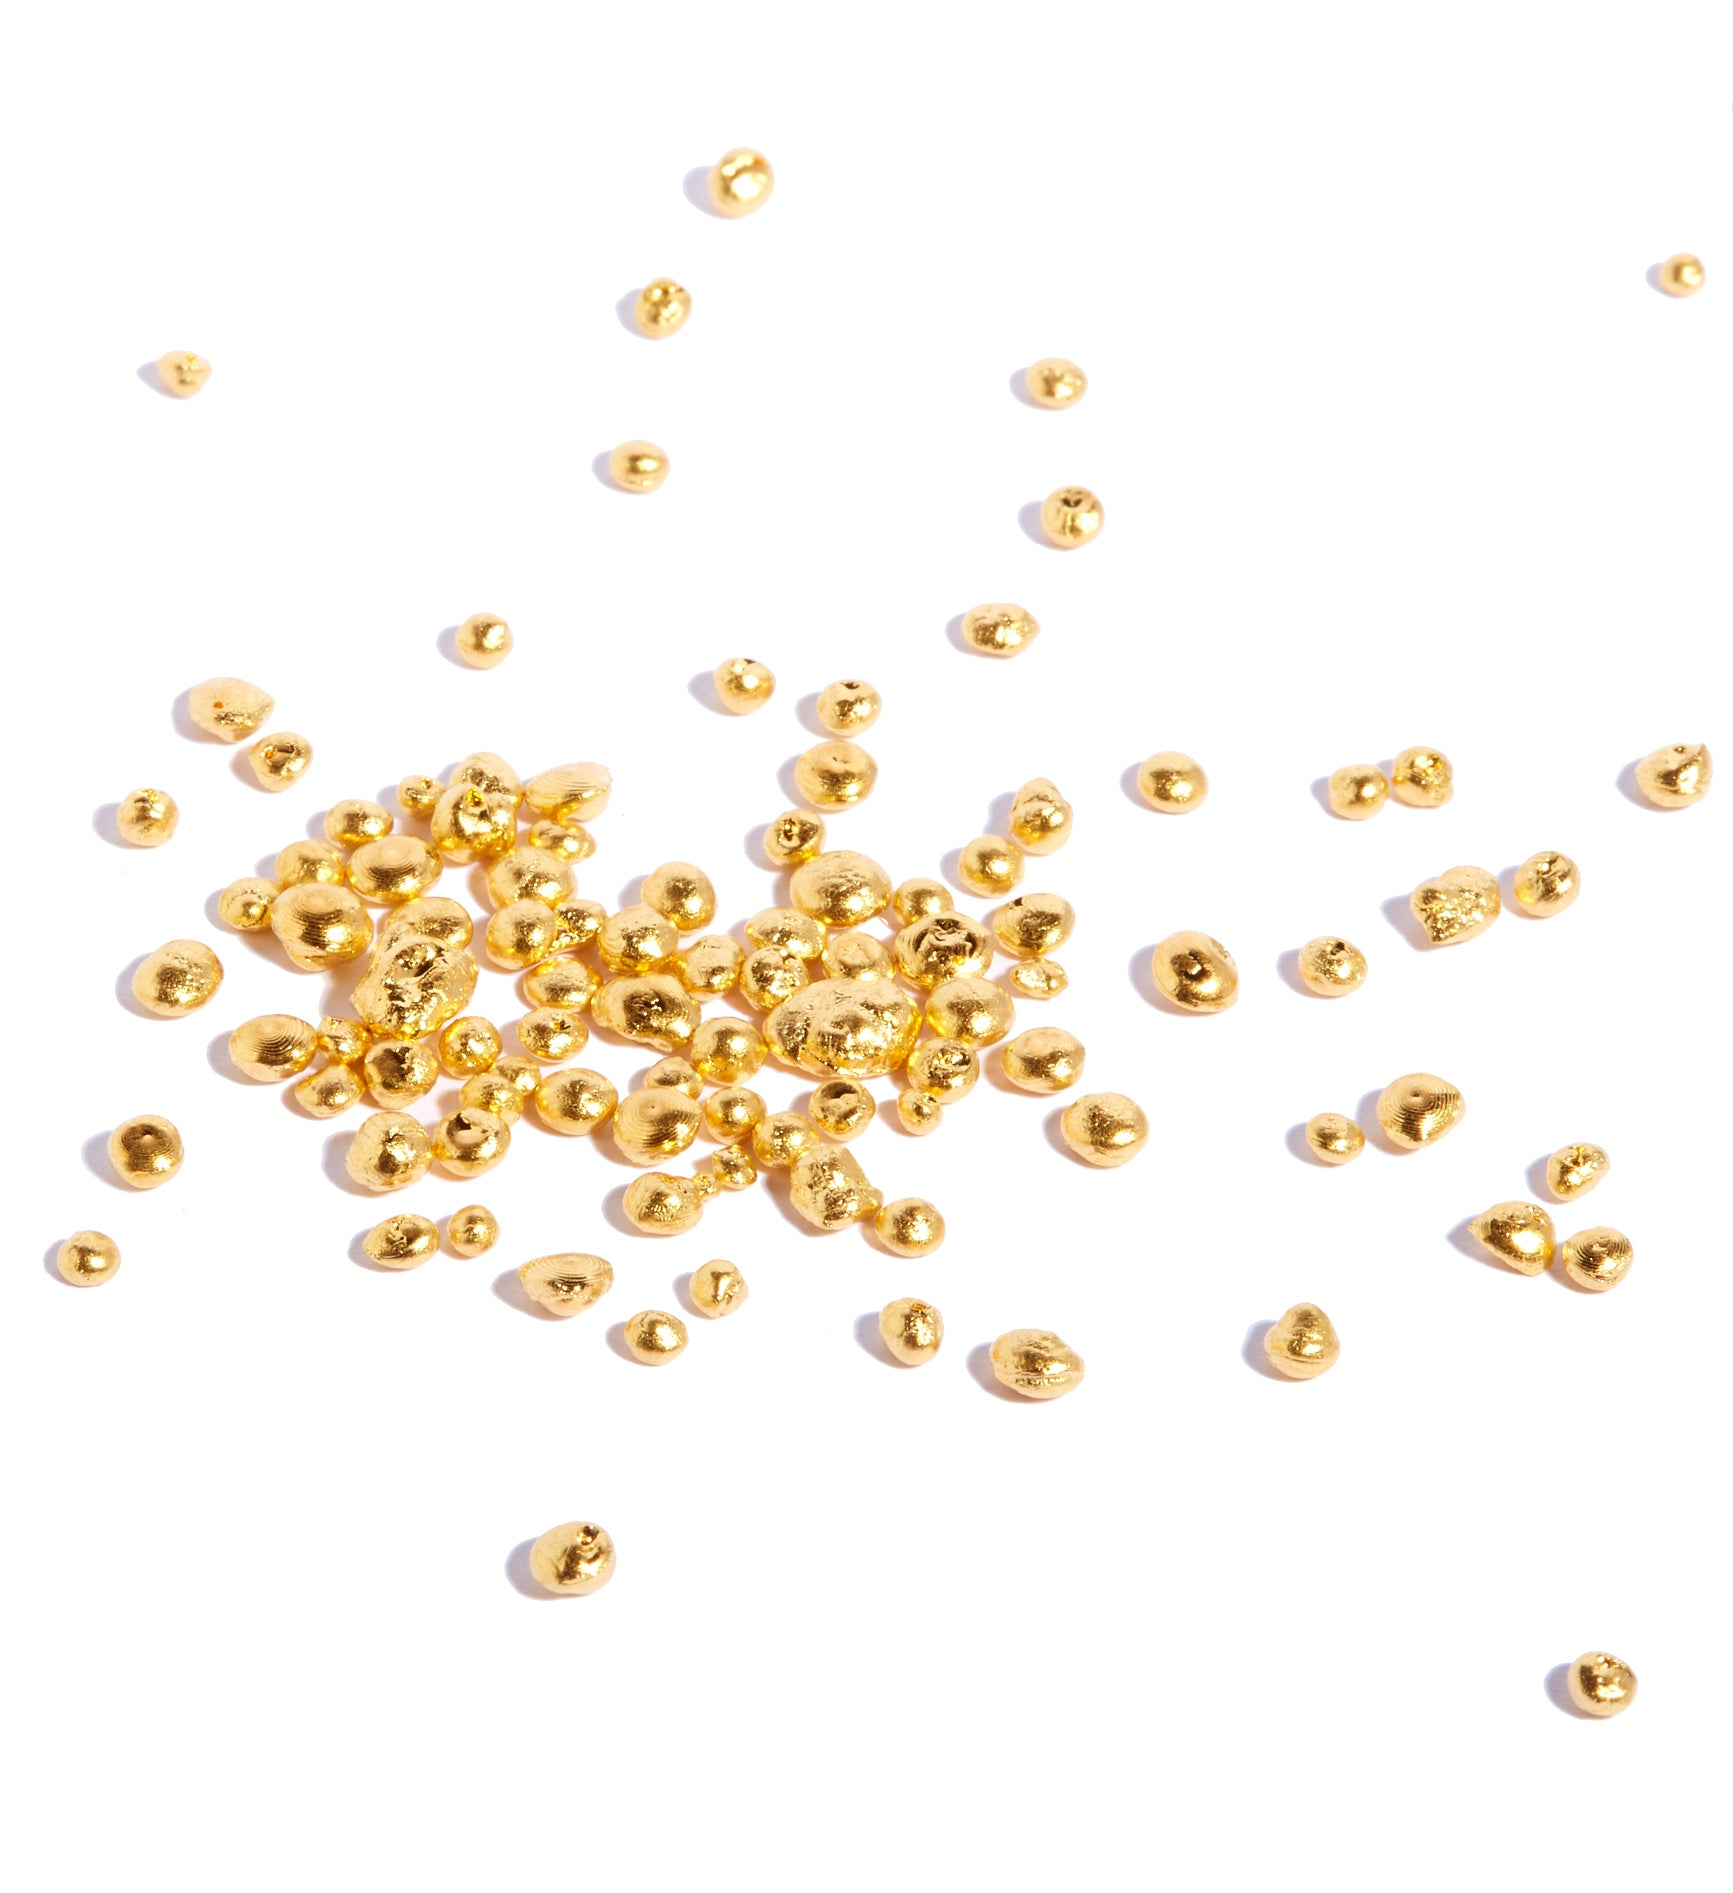 https://cdn.shopify.com/s/files/1/0571/9261/t/15/assets/gold%20granules-1509684752966.jpg?3265829931644054690